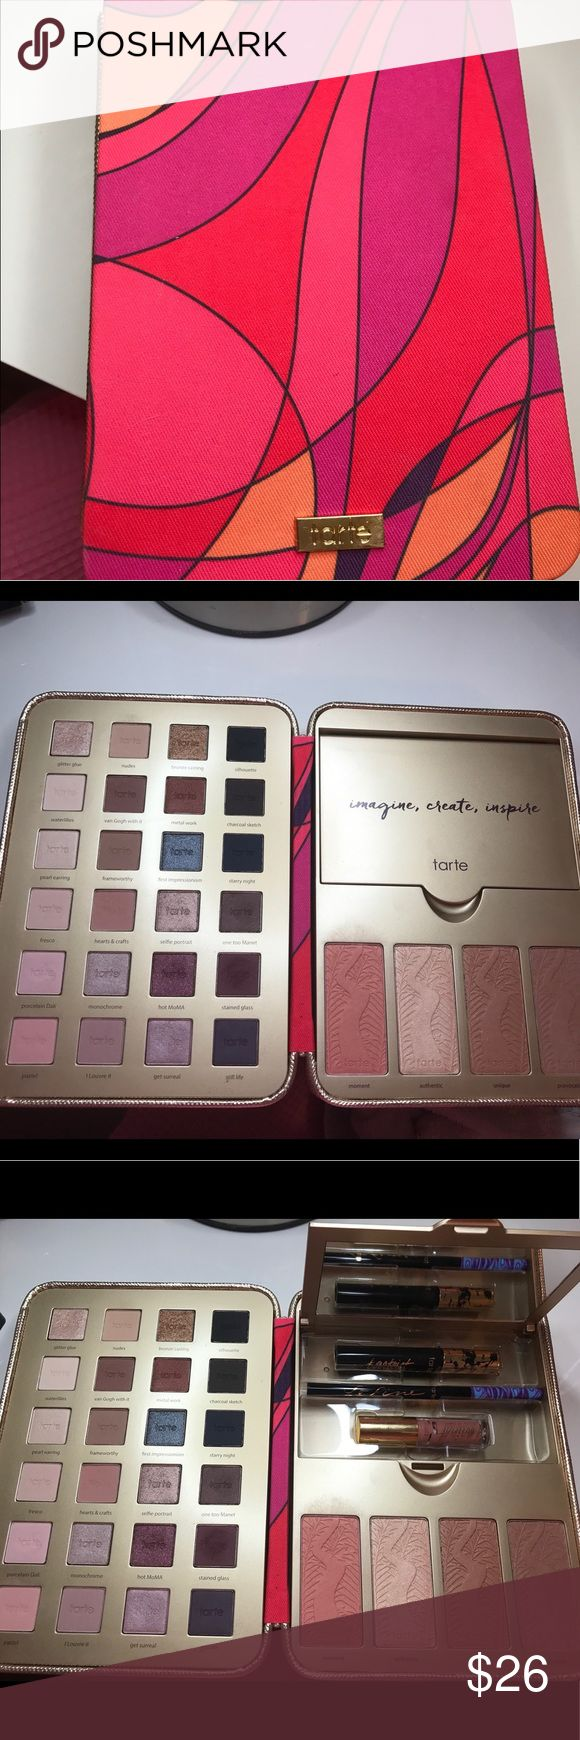 Tarte Holiday Palette Used once. Mascara, liner and lip gloss have never been used. I just own too much make up and need to purge the things I don't use. Tarte Makeup Eyeshadow